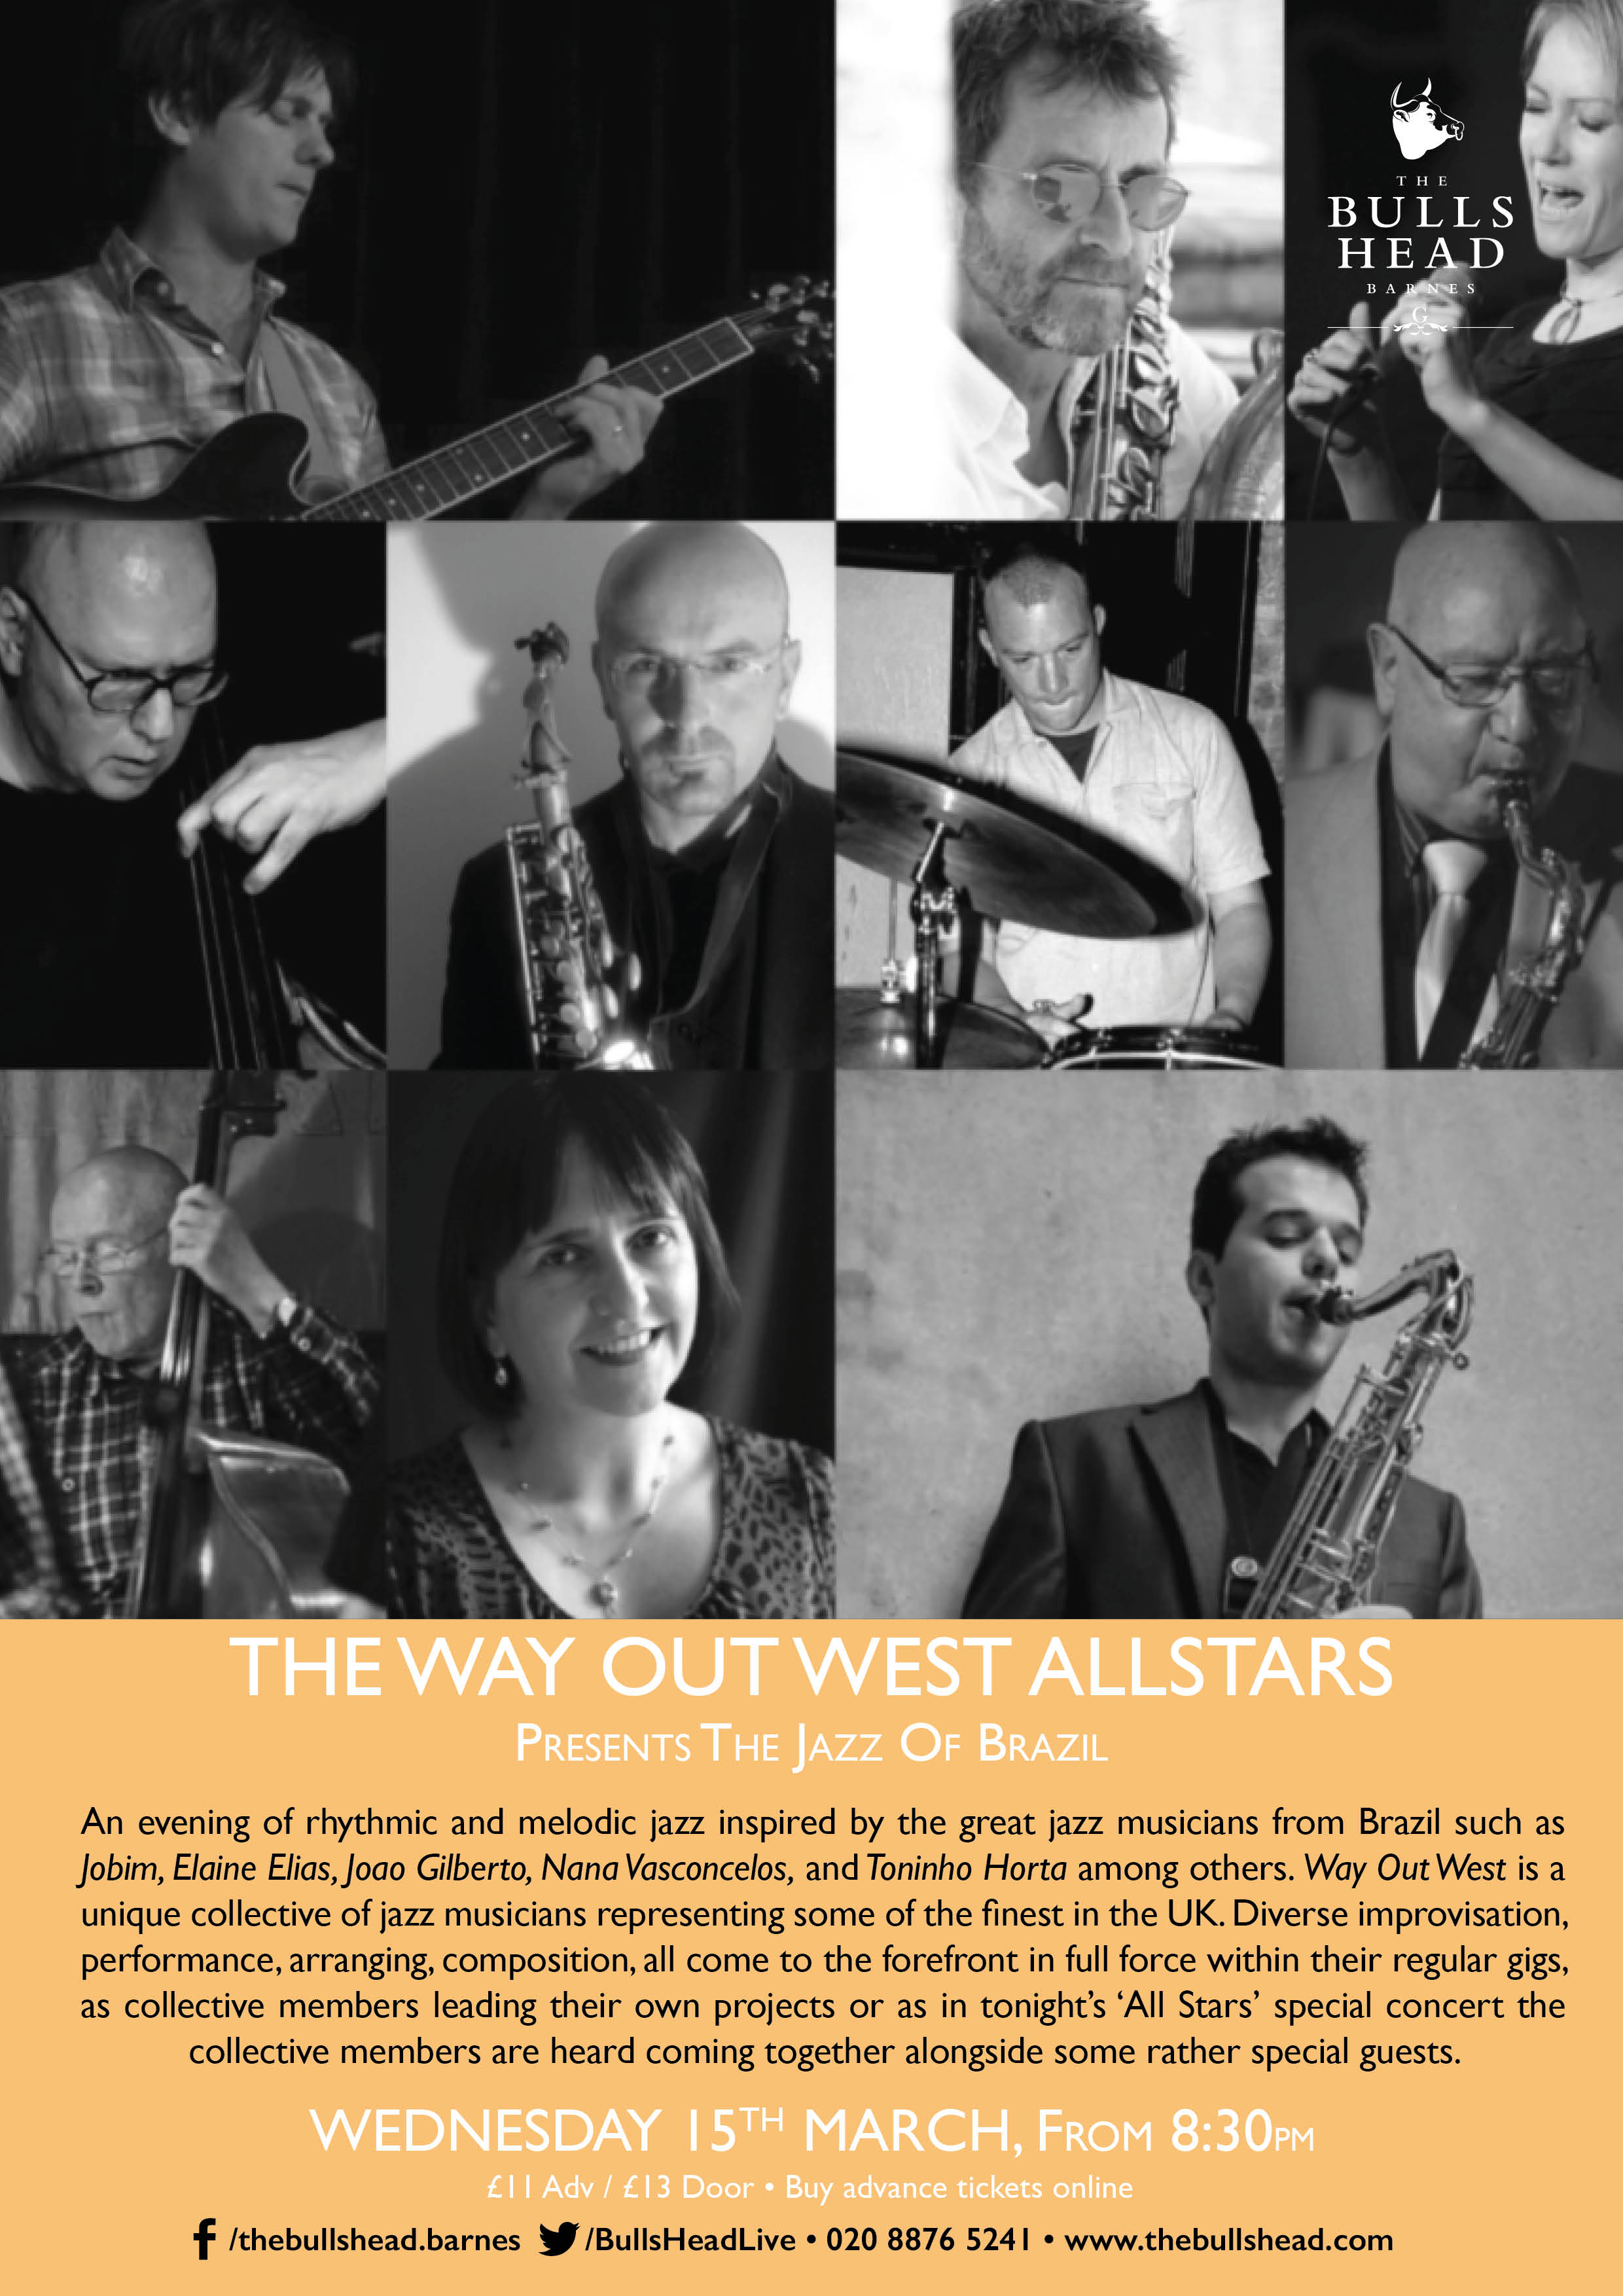 The Way Out West Allstars - A Short History of Jazz Part II